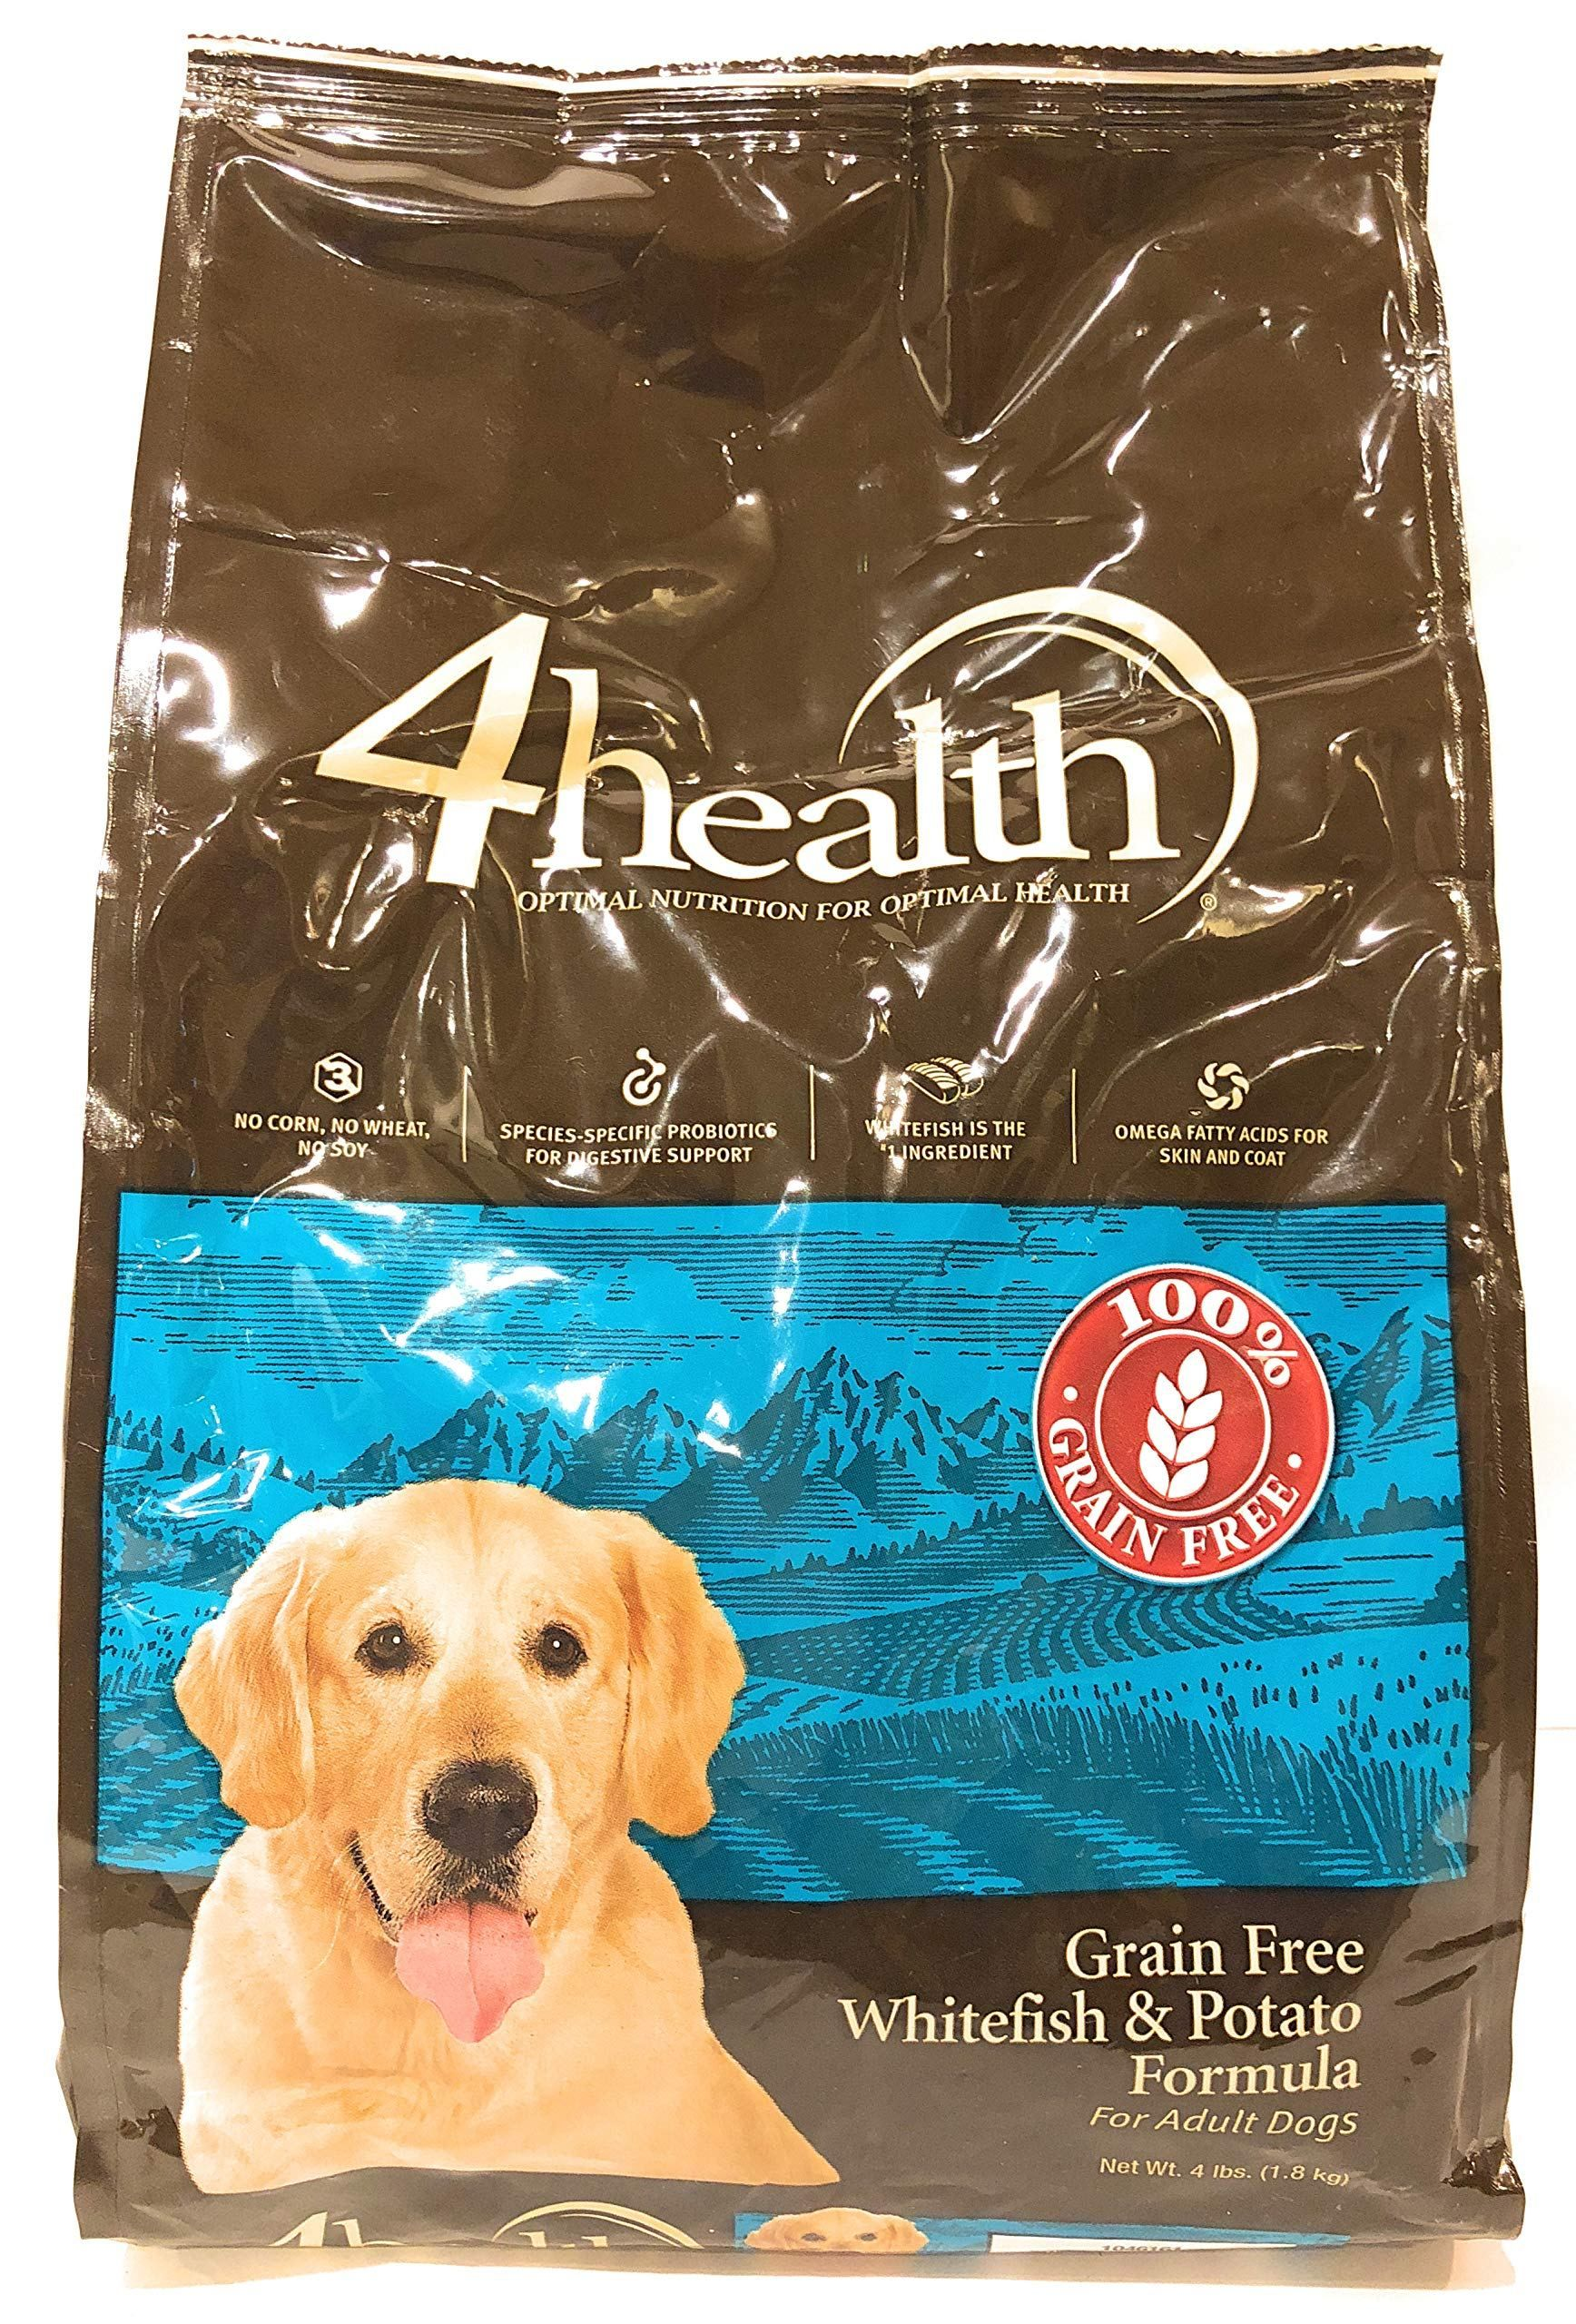 4health Tractor Supply Company Grain Free Adult Dog Food